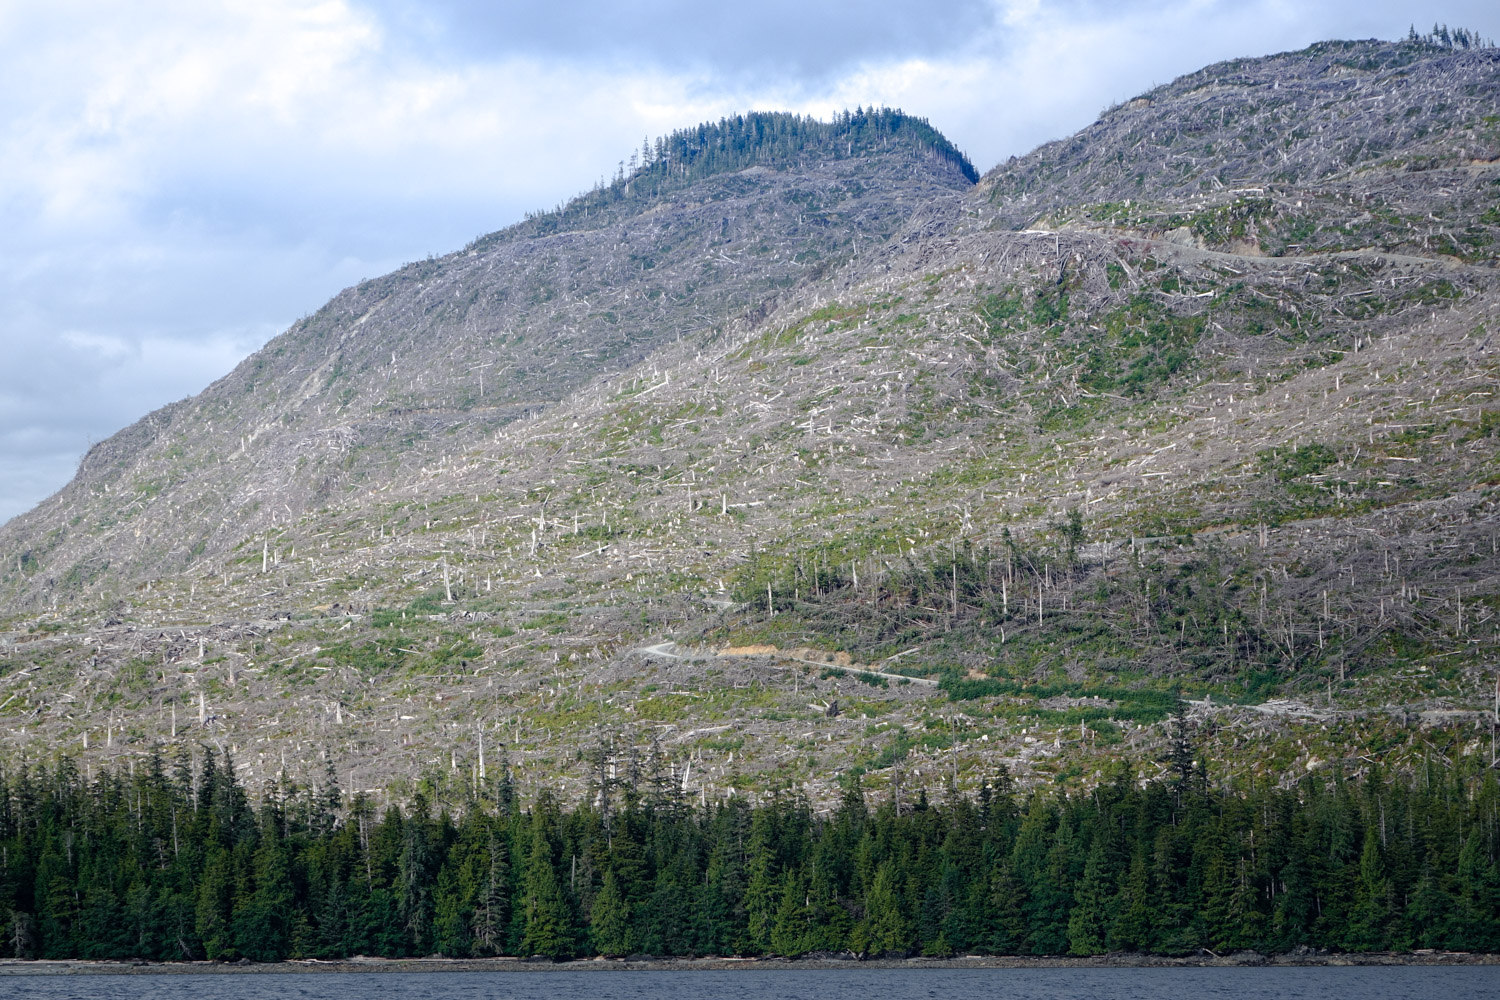 Under Alaska law there is no limit on the size of a clearcut.